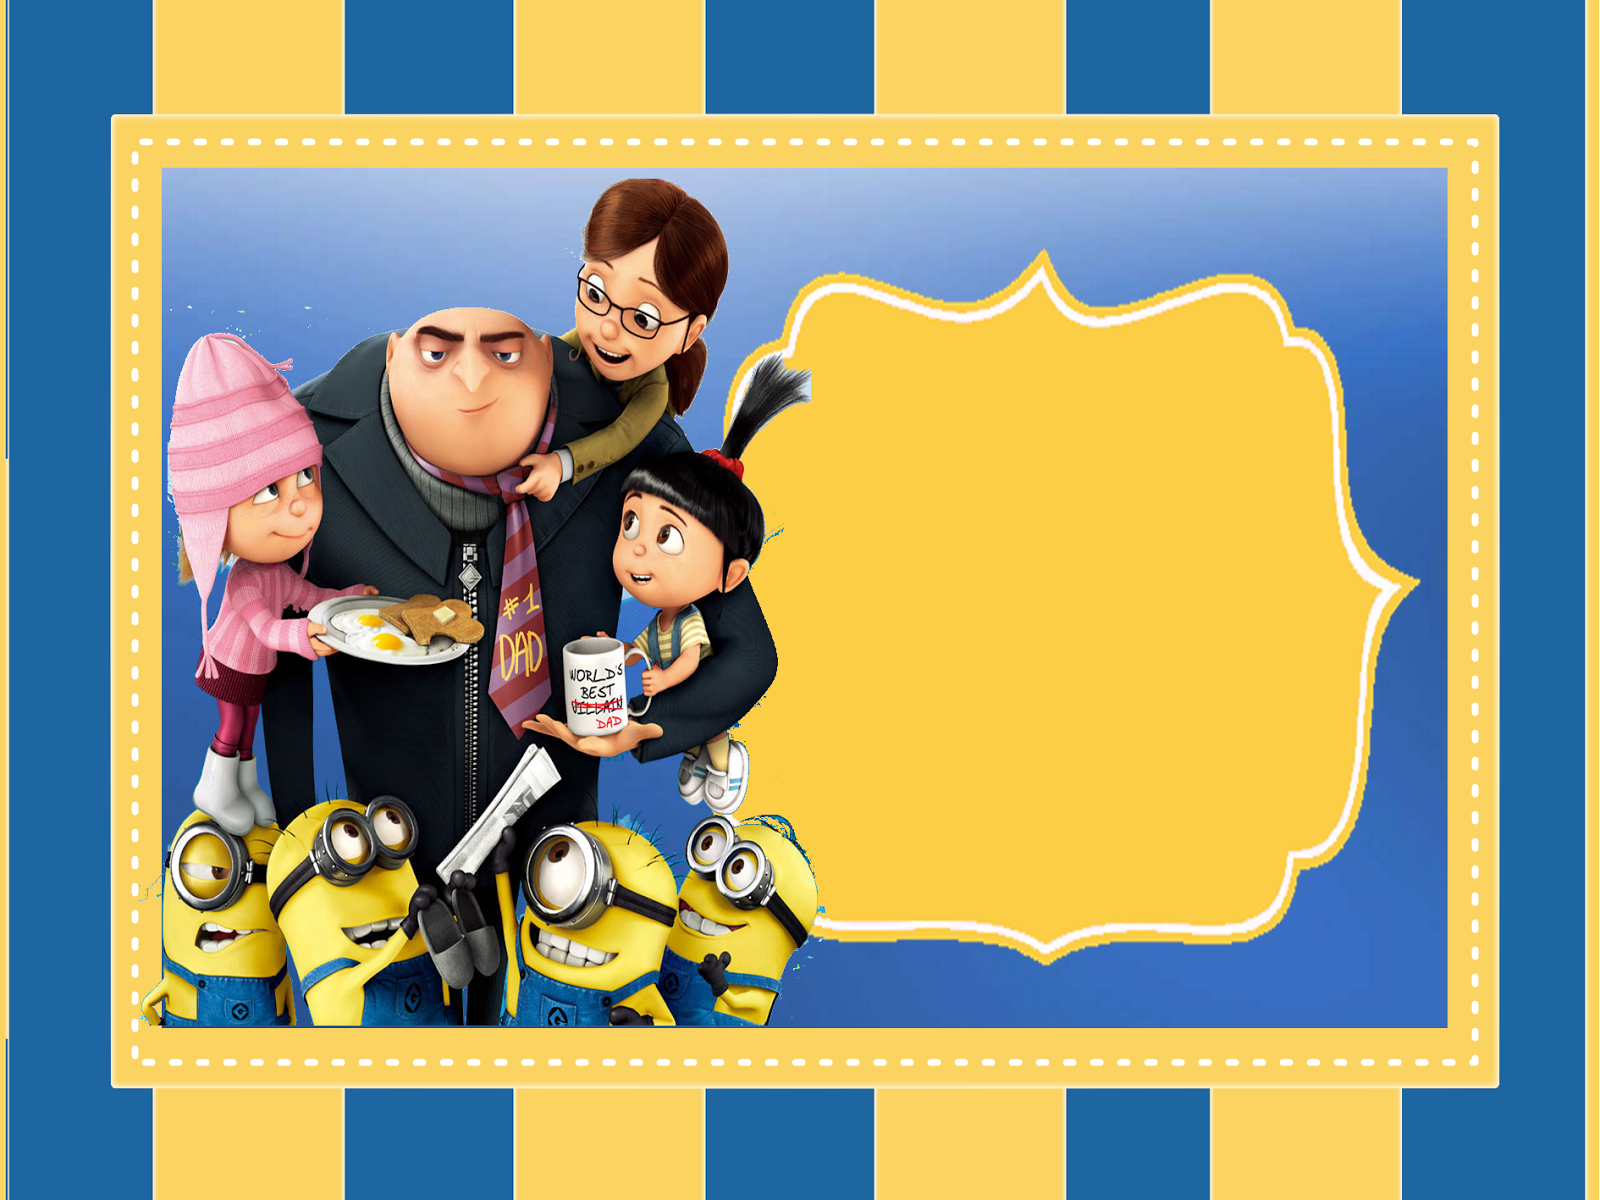 Despicable Me 2 Free Printable Kit Oh My Fiesta in english